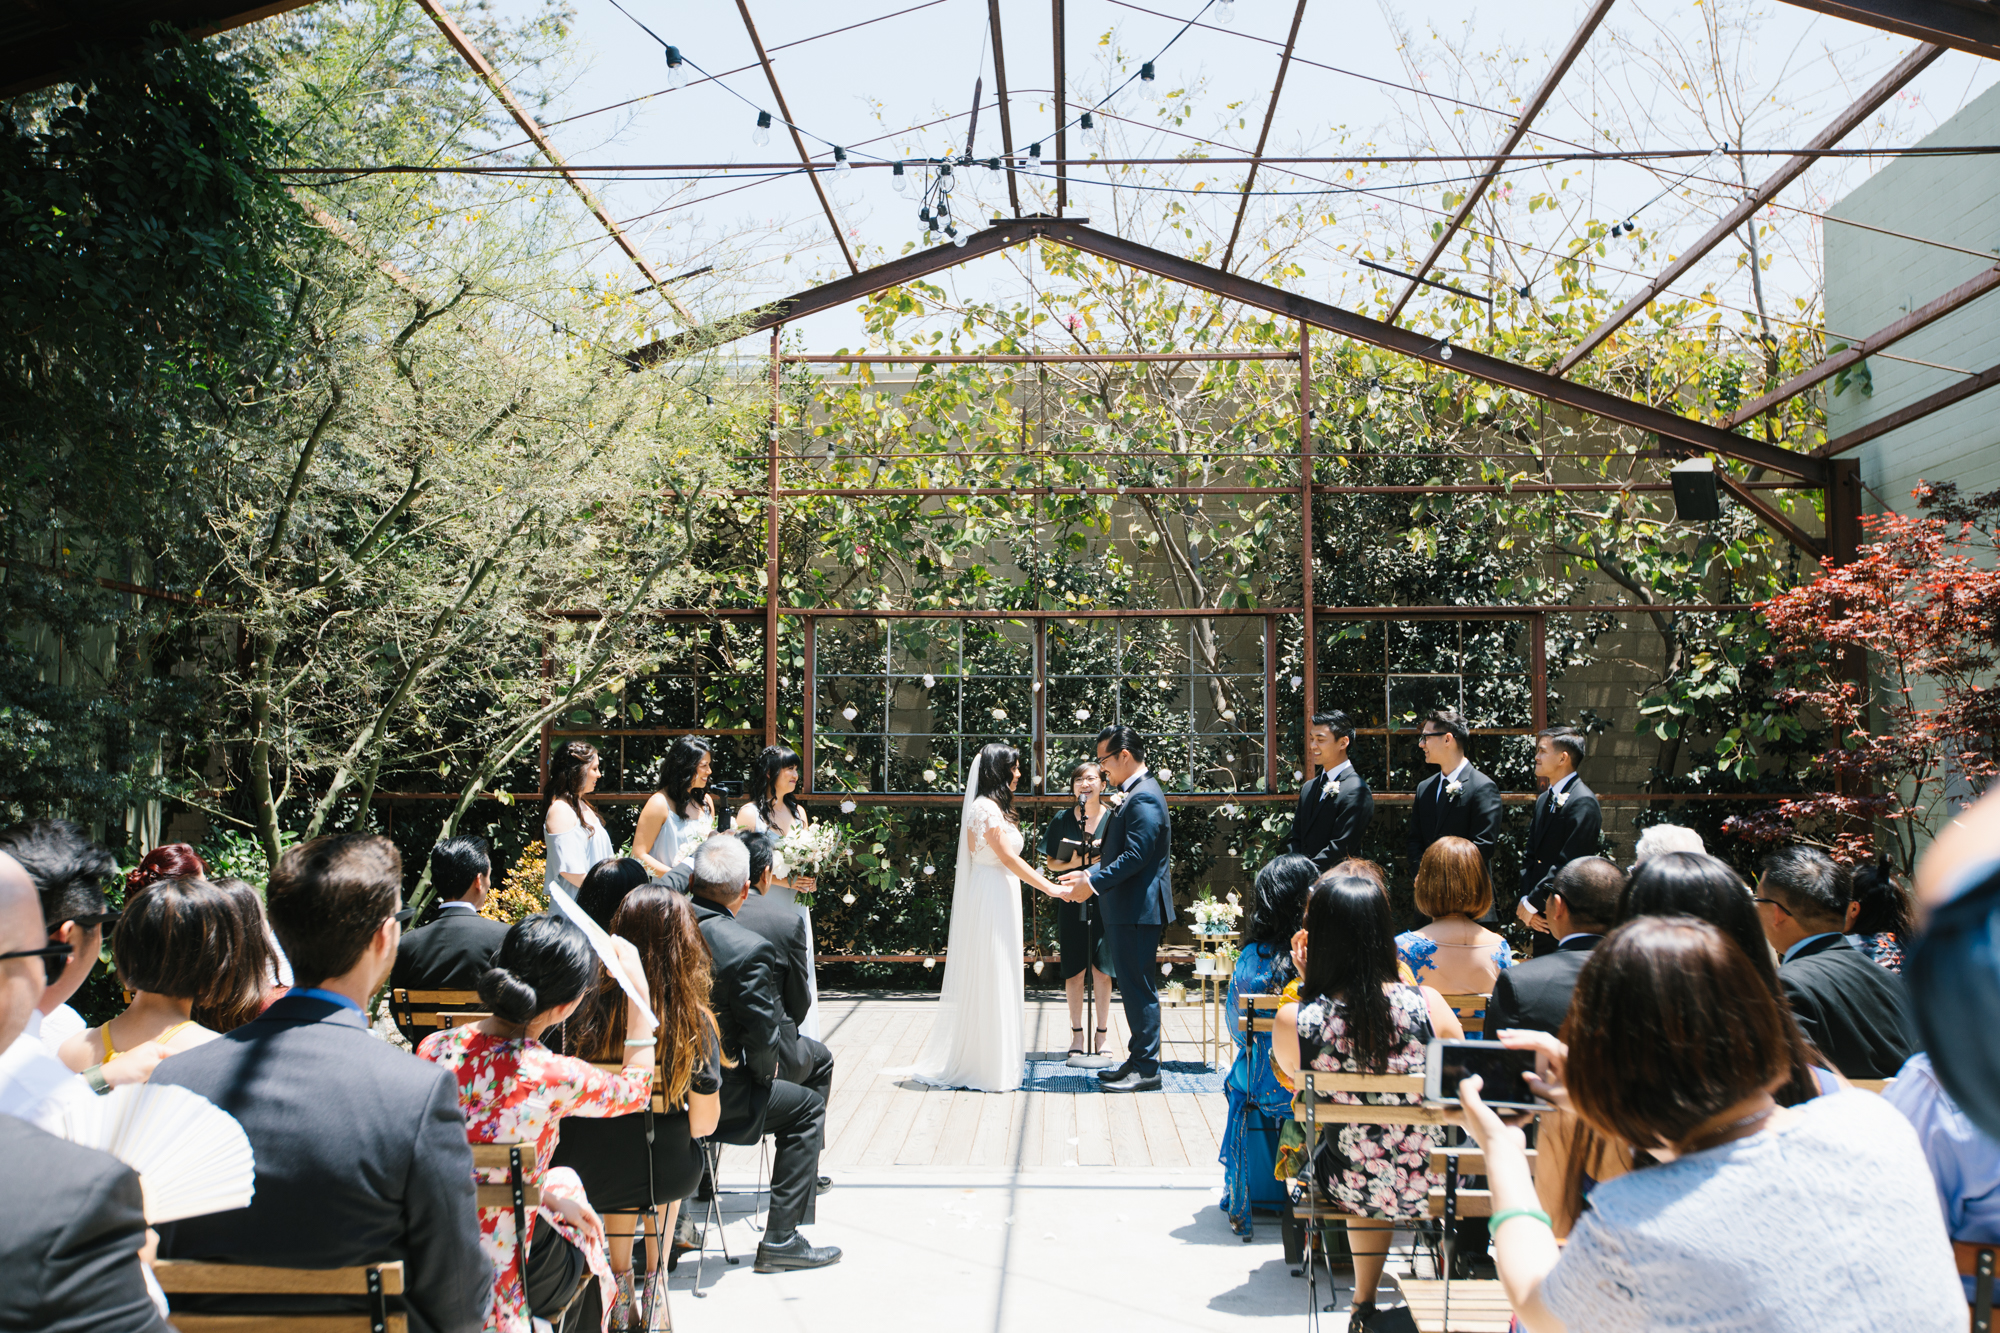 Green and glass ceremony